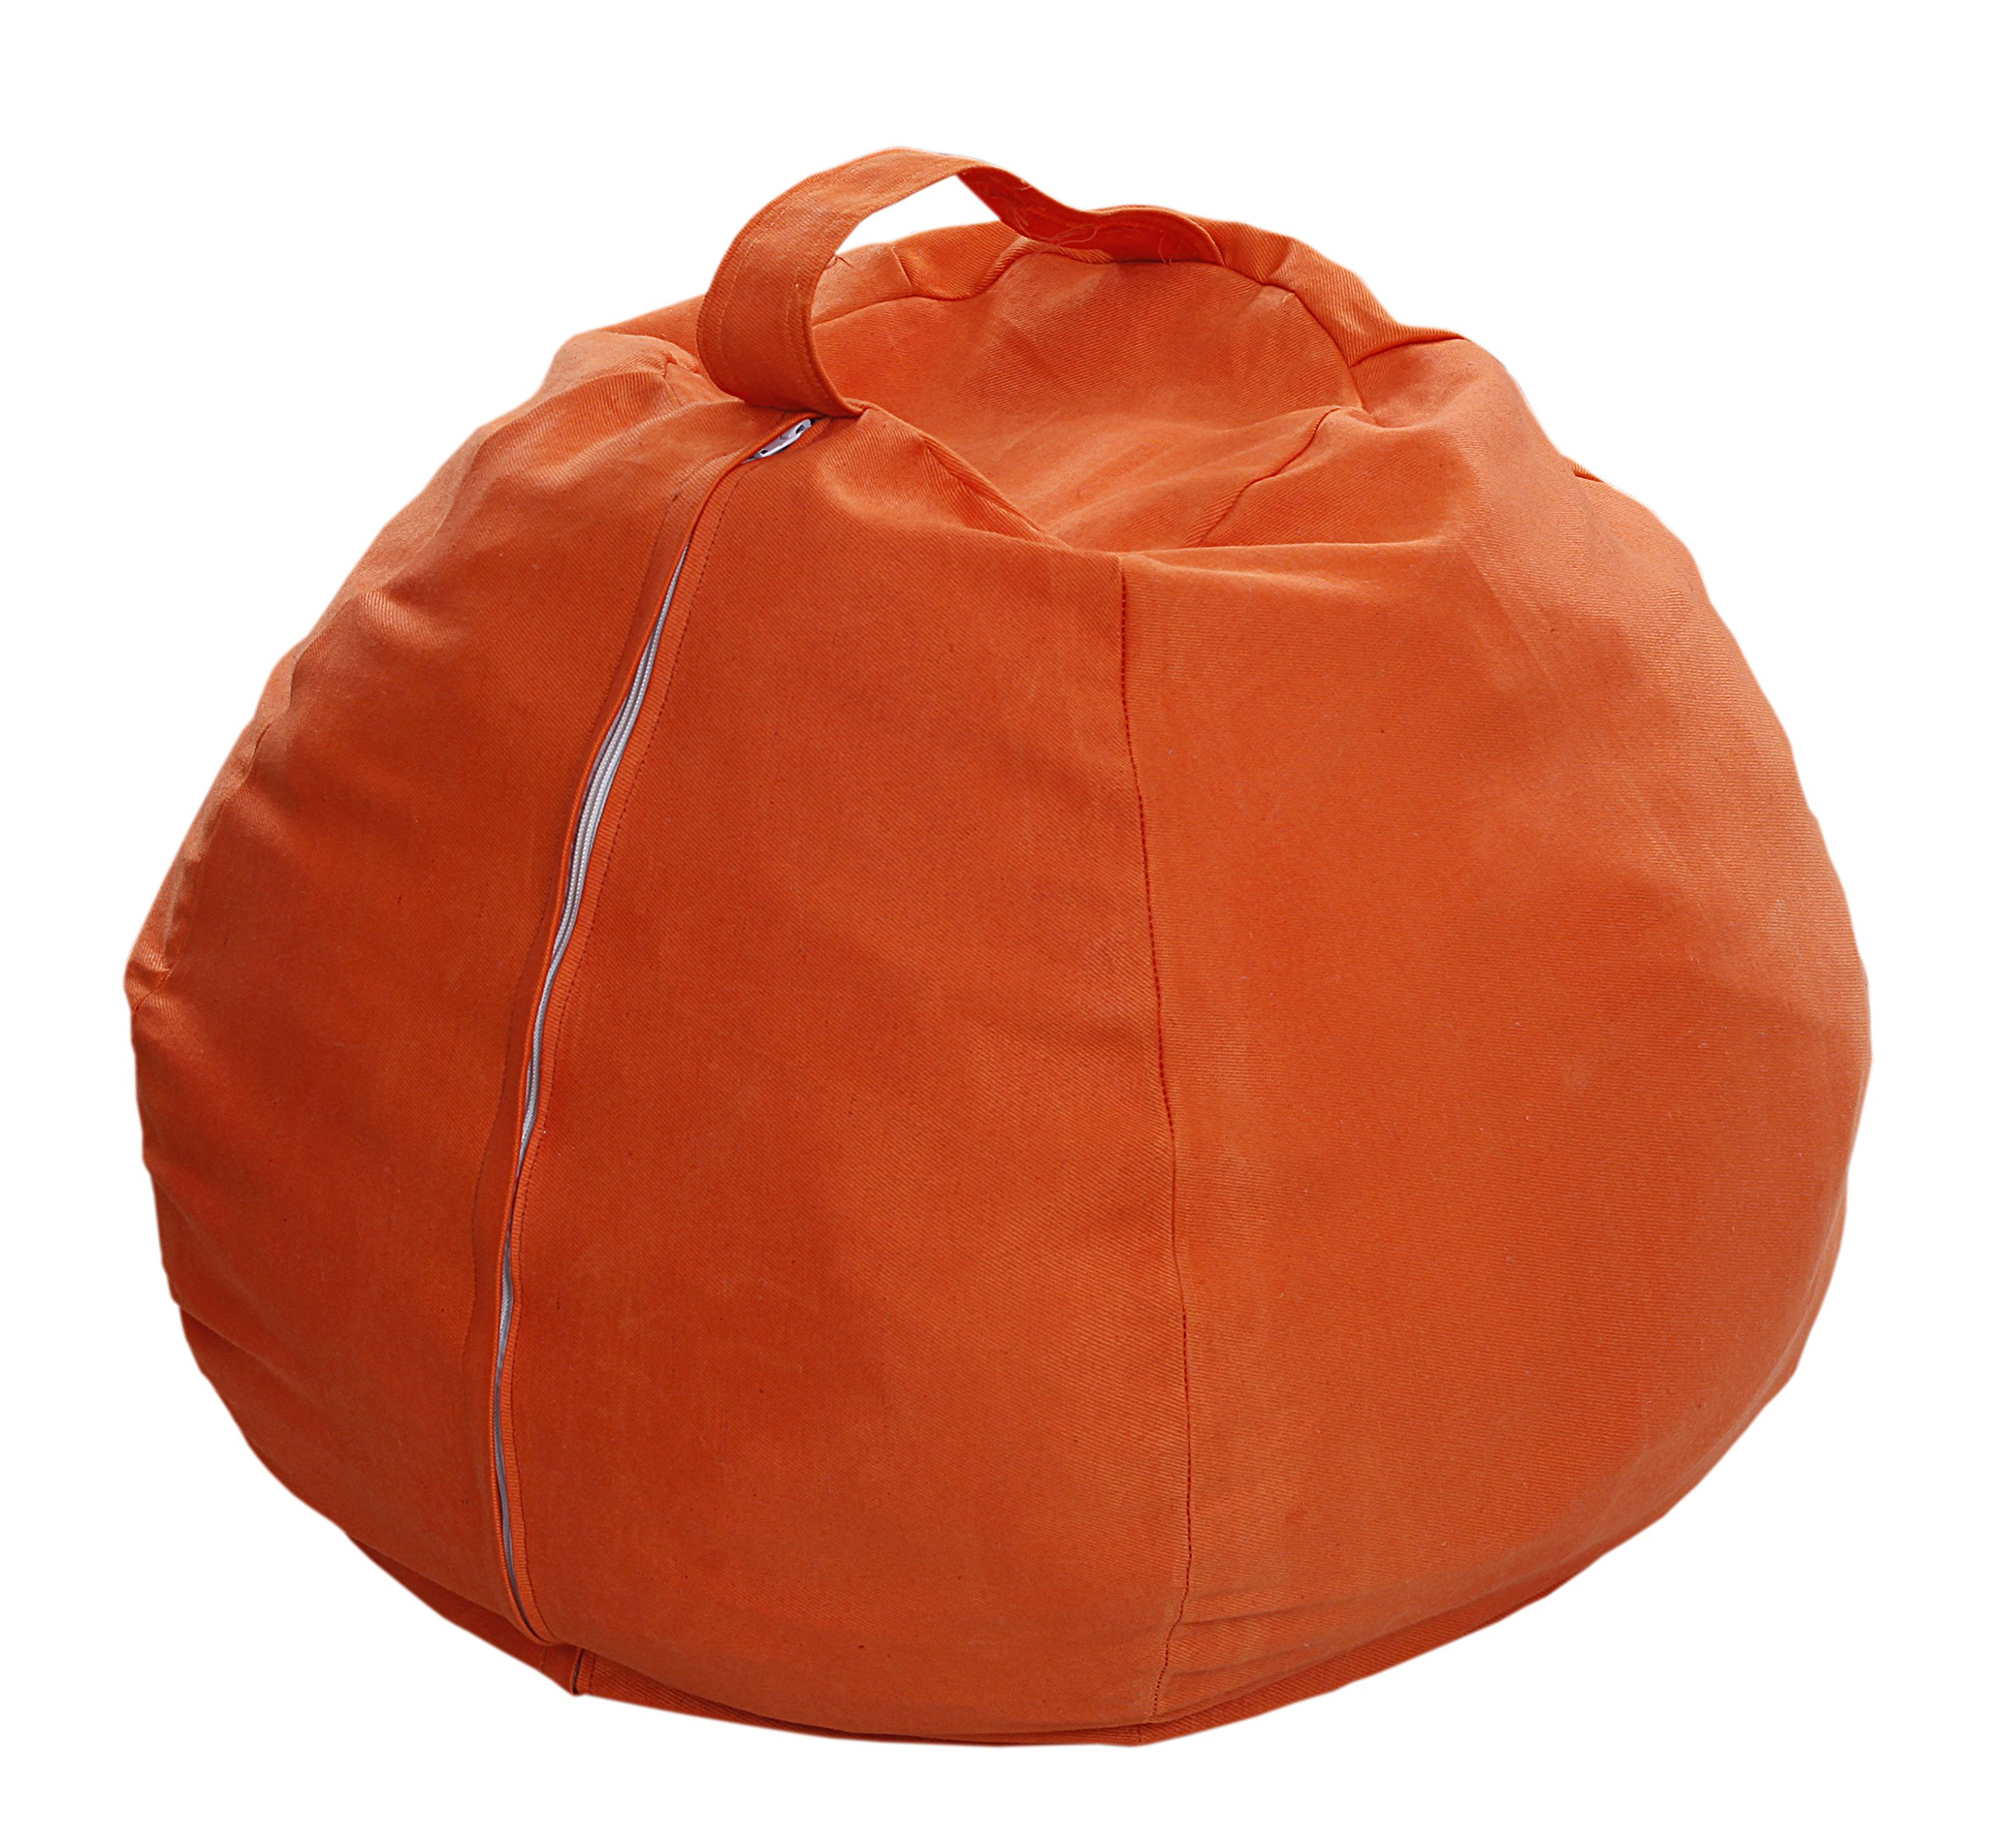 Anti Rip Canvas Orange Bean Bag Covers/Chair for Stuffed Toys Animals Storage Replace Mesh Toy Hammock Storage Bags Perfect Storage Solution for Pillows/Blankets Strong Zipper